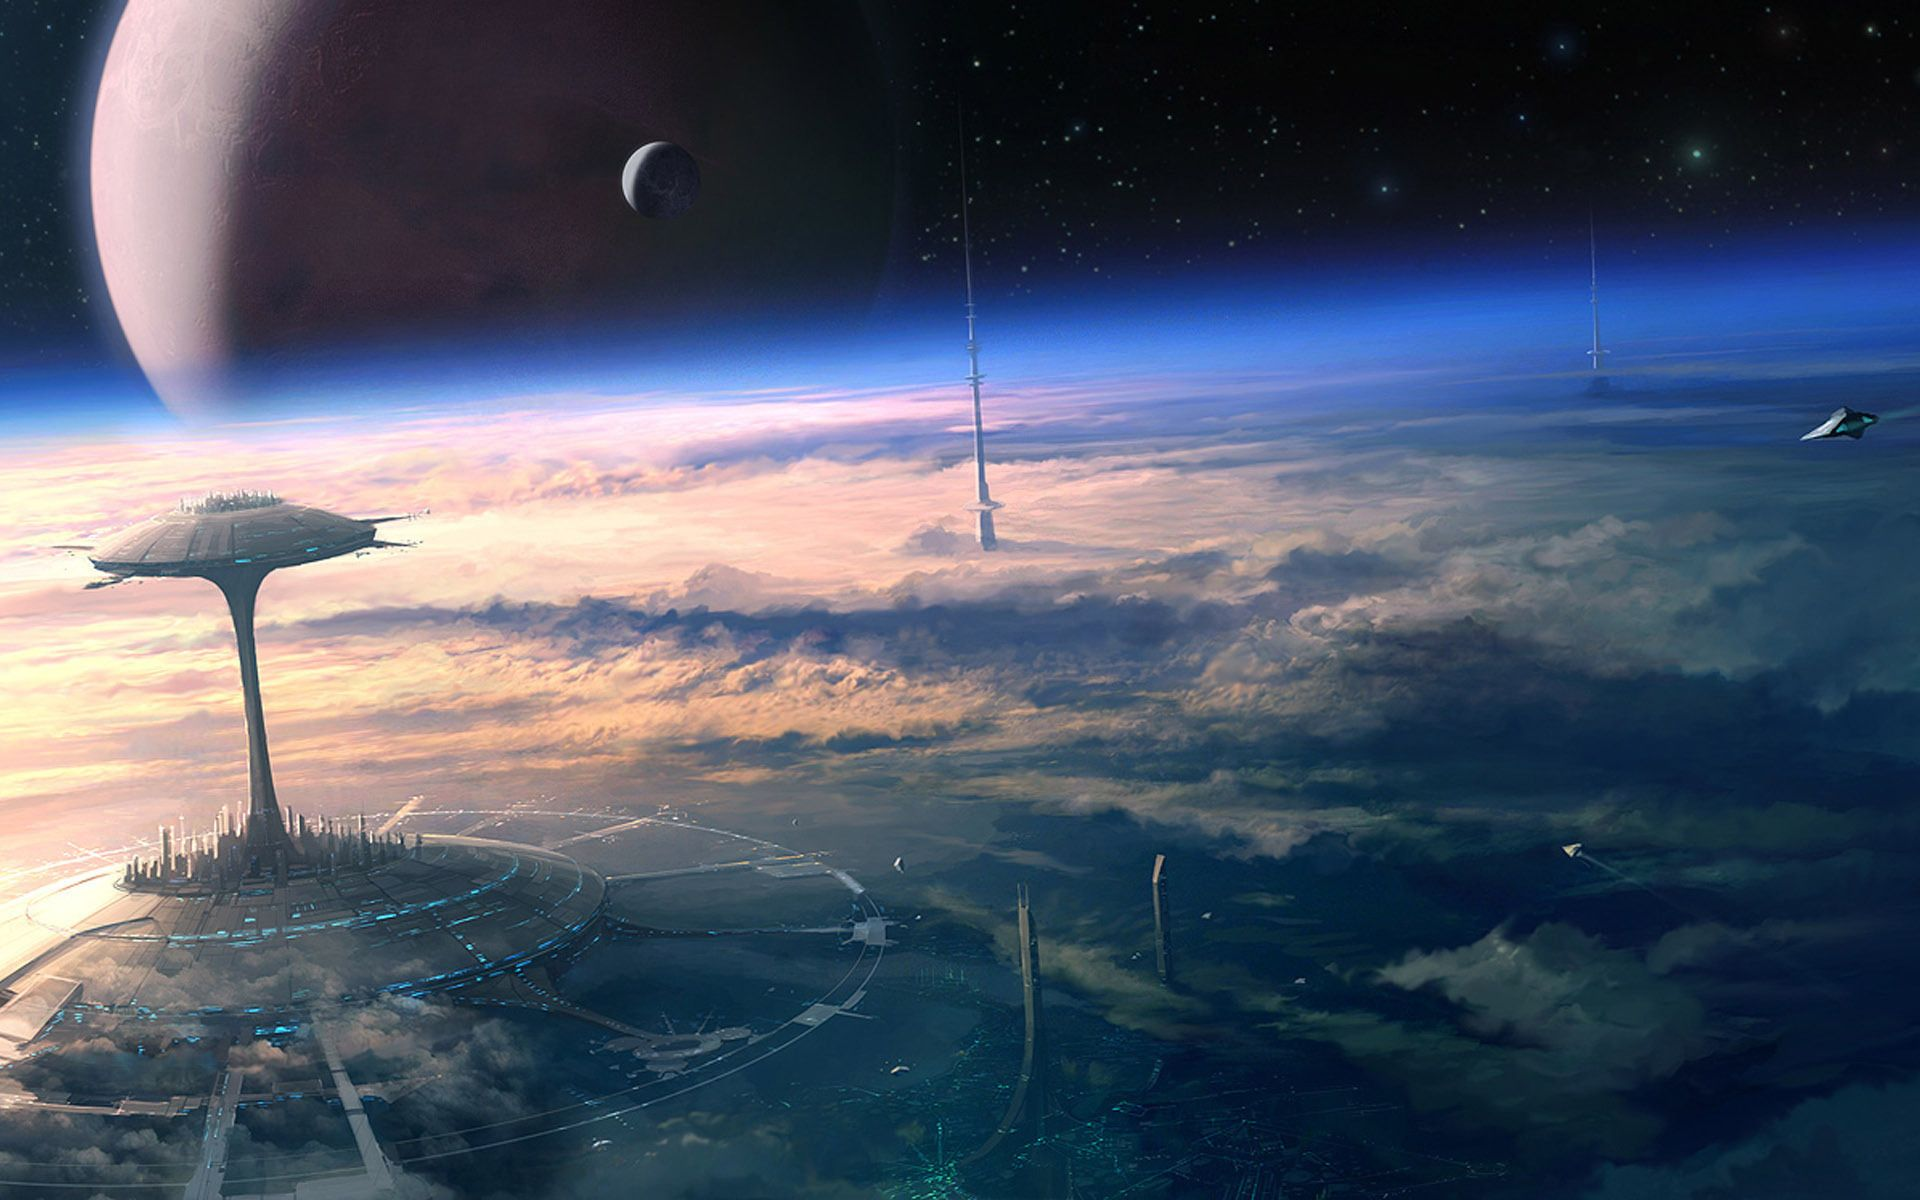 sci fi landscape alien planets - photo #13